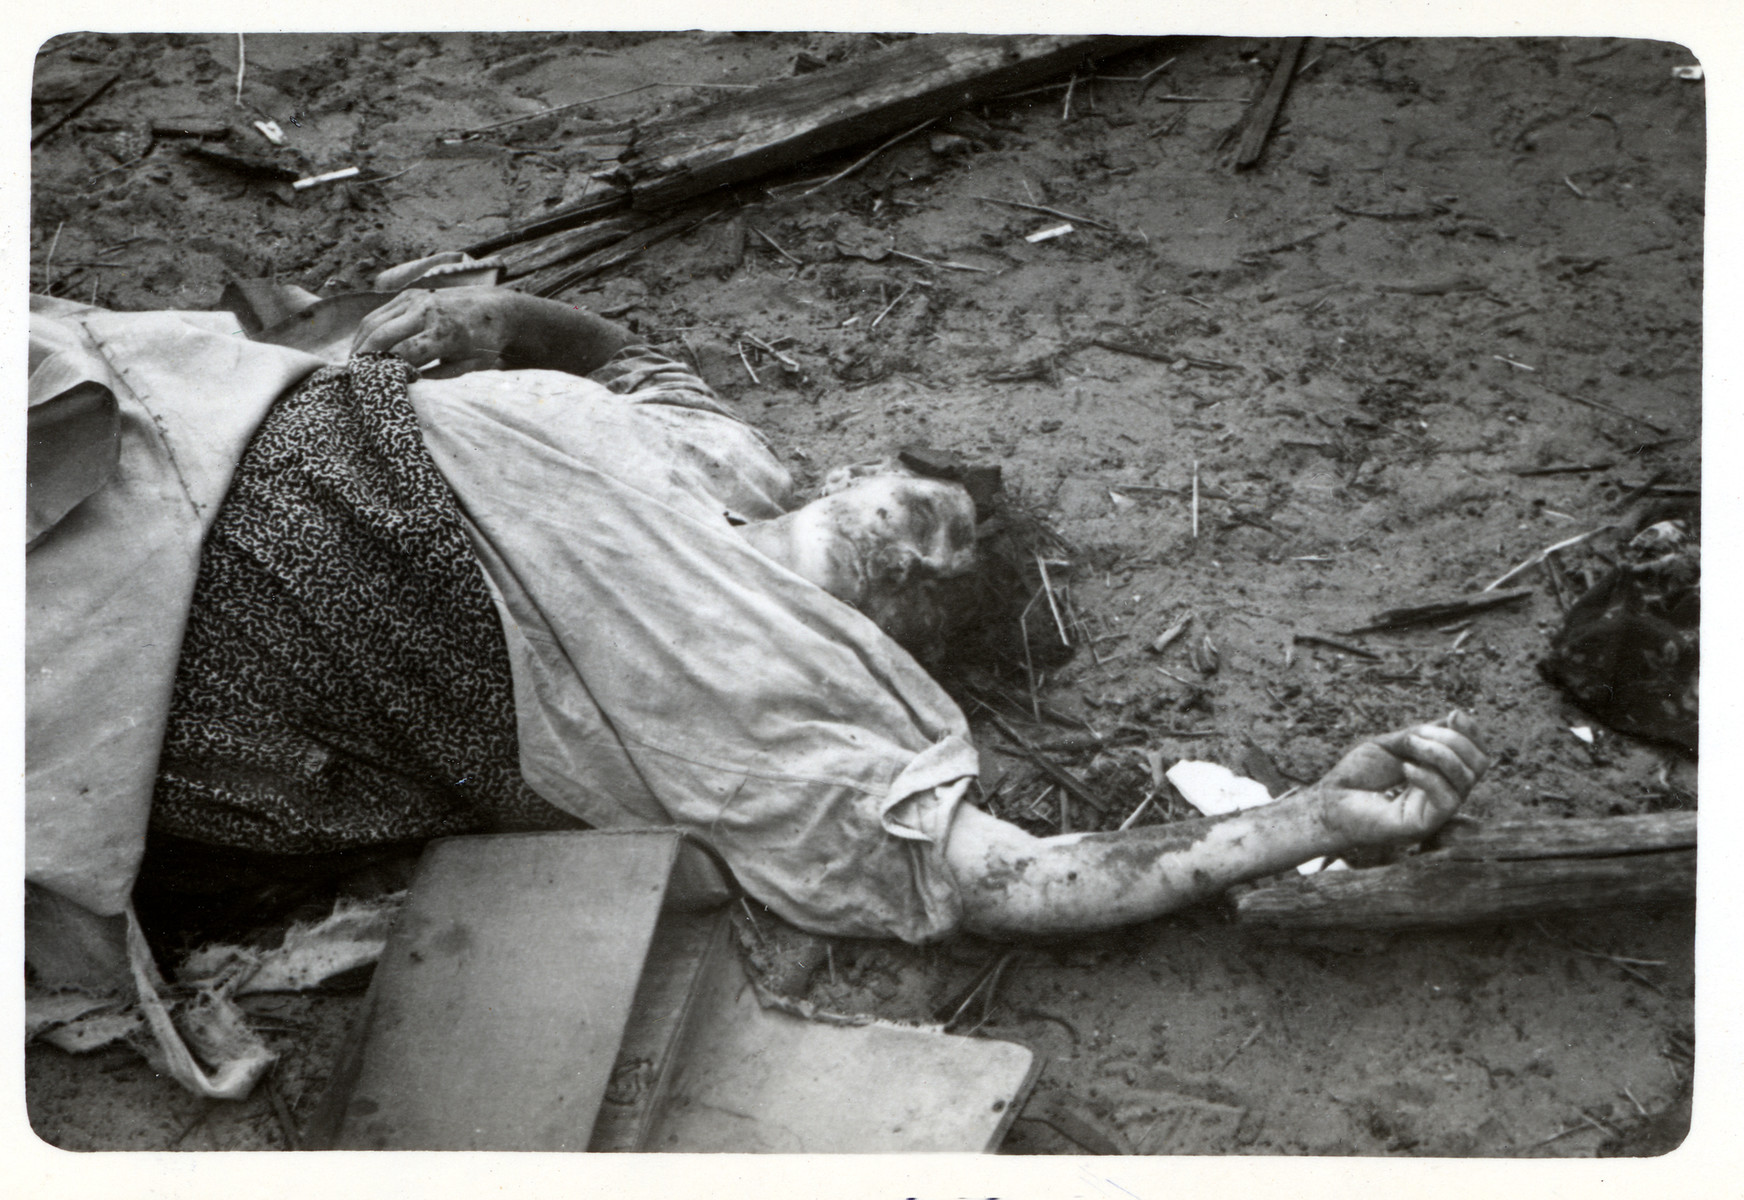 The corpse of a Polish woman who was killed during an air raid in besieged Warsaw.